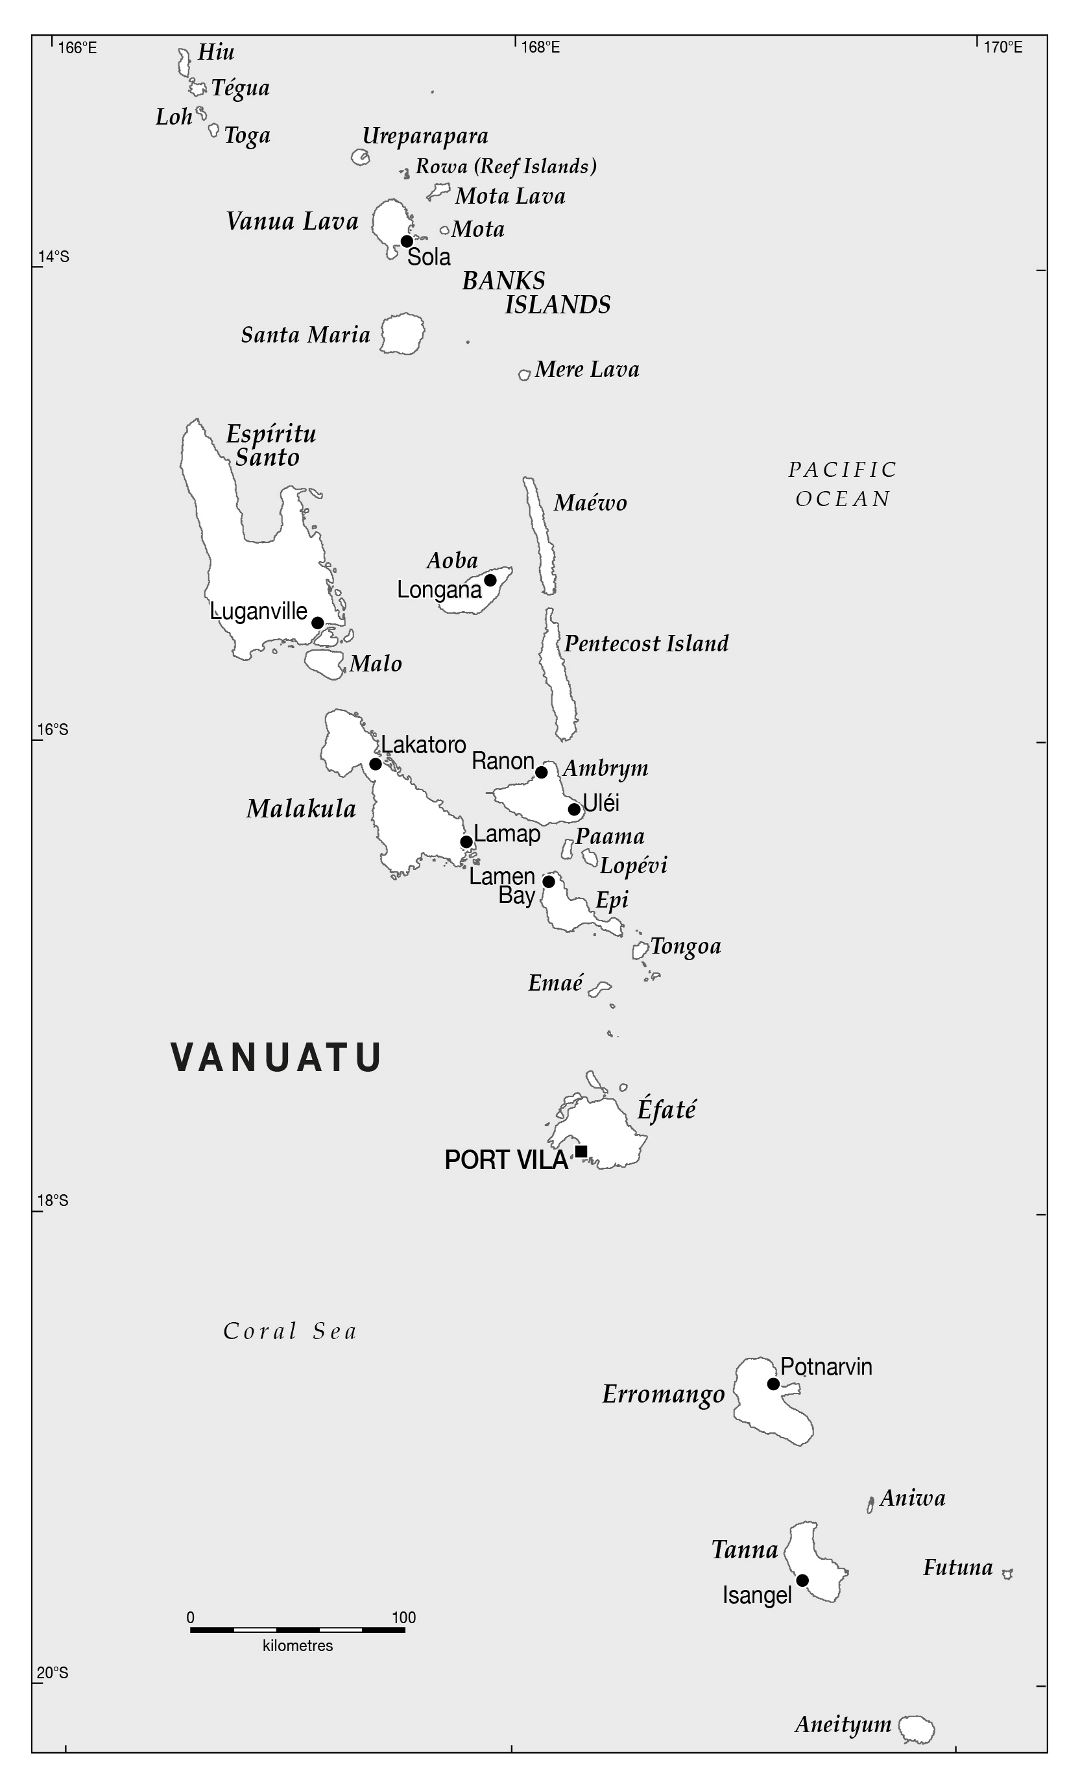 Large political map of Vanuatu with cities and island names